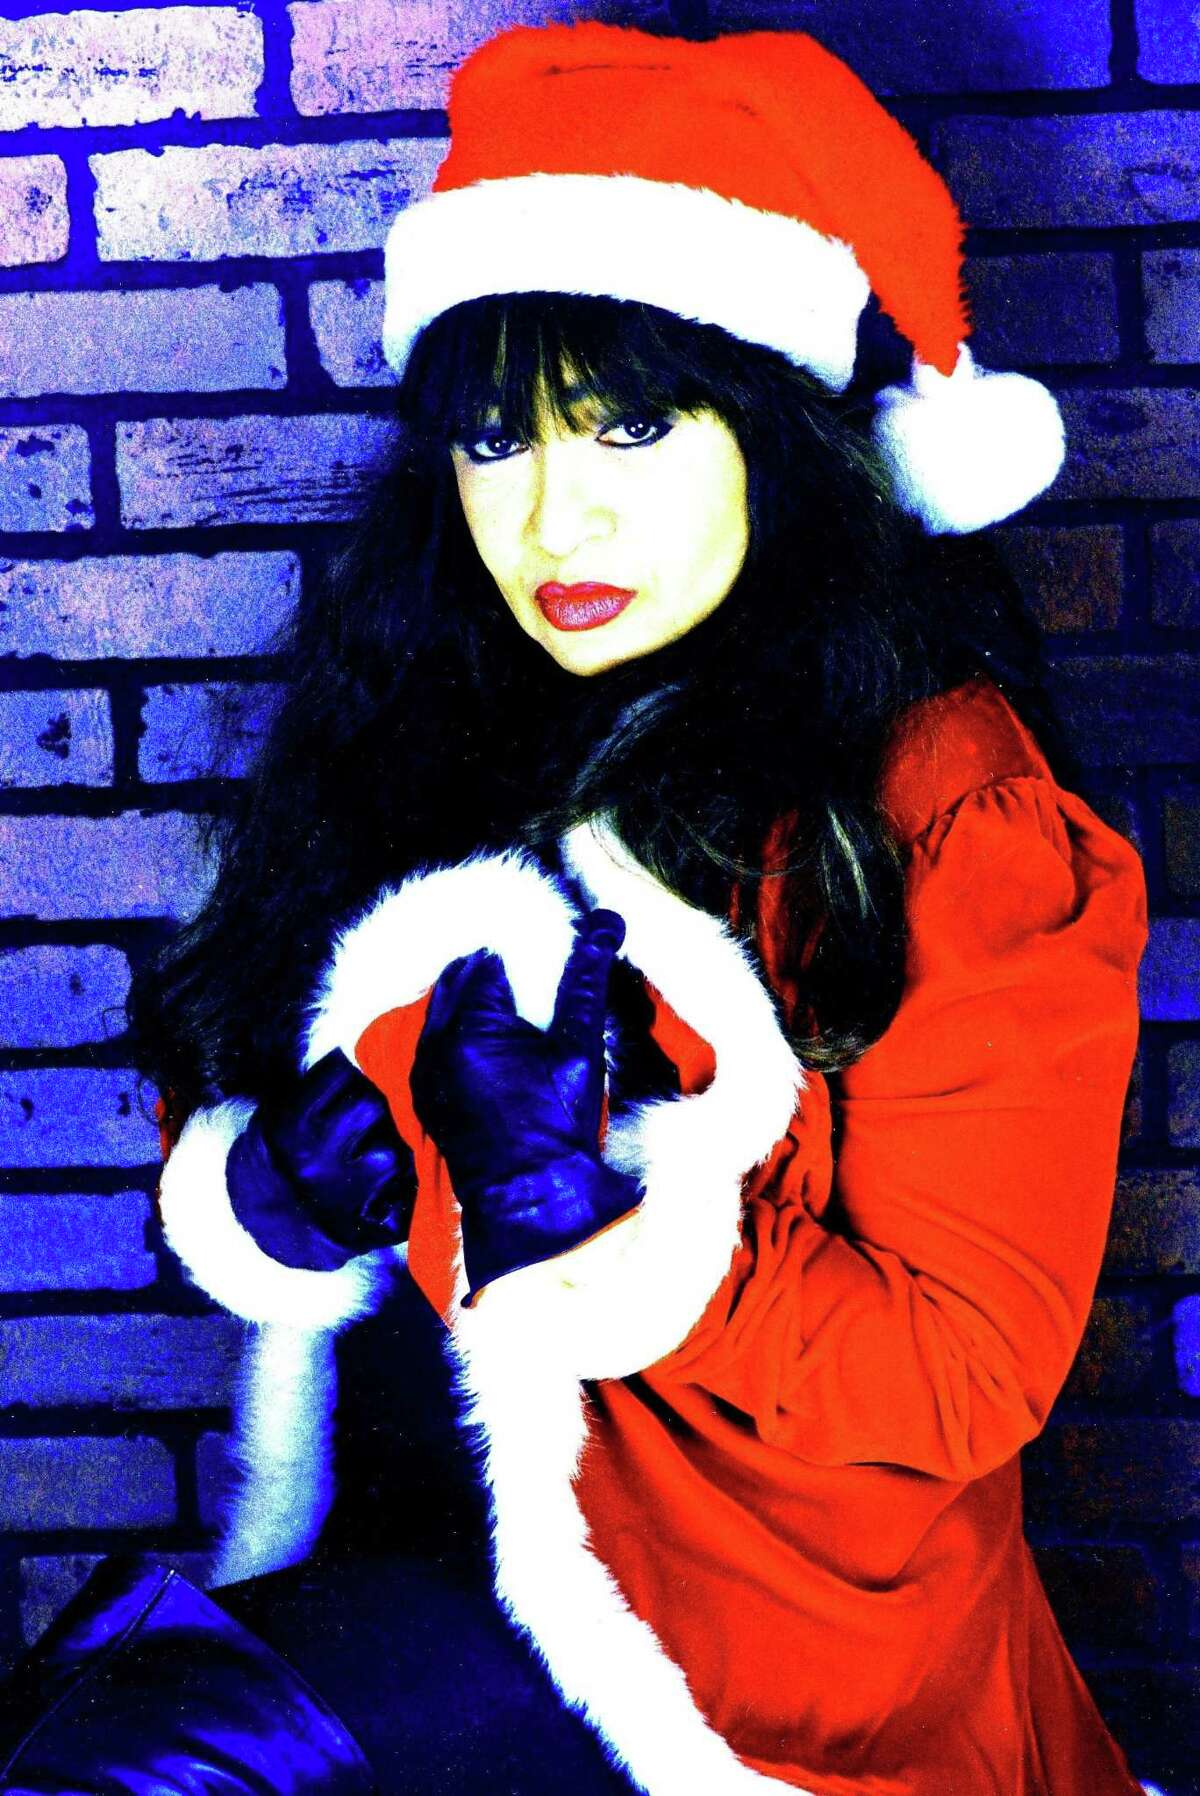 Ronnie Spector will perform at Mohegan Sun's Wolf Den on Dec. 23.